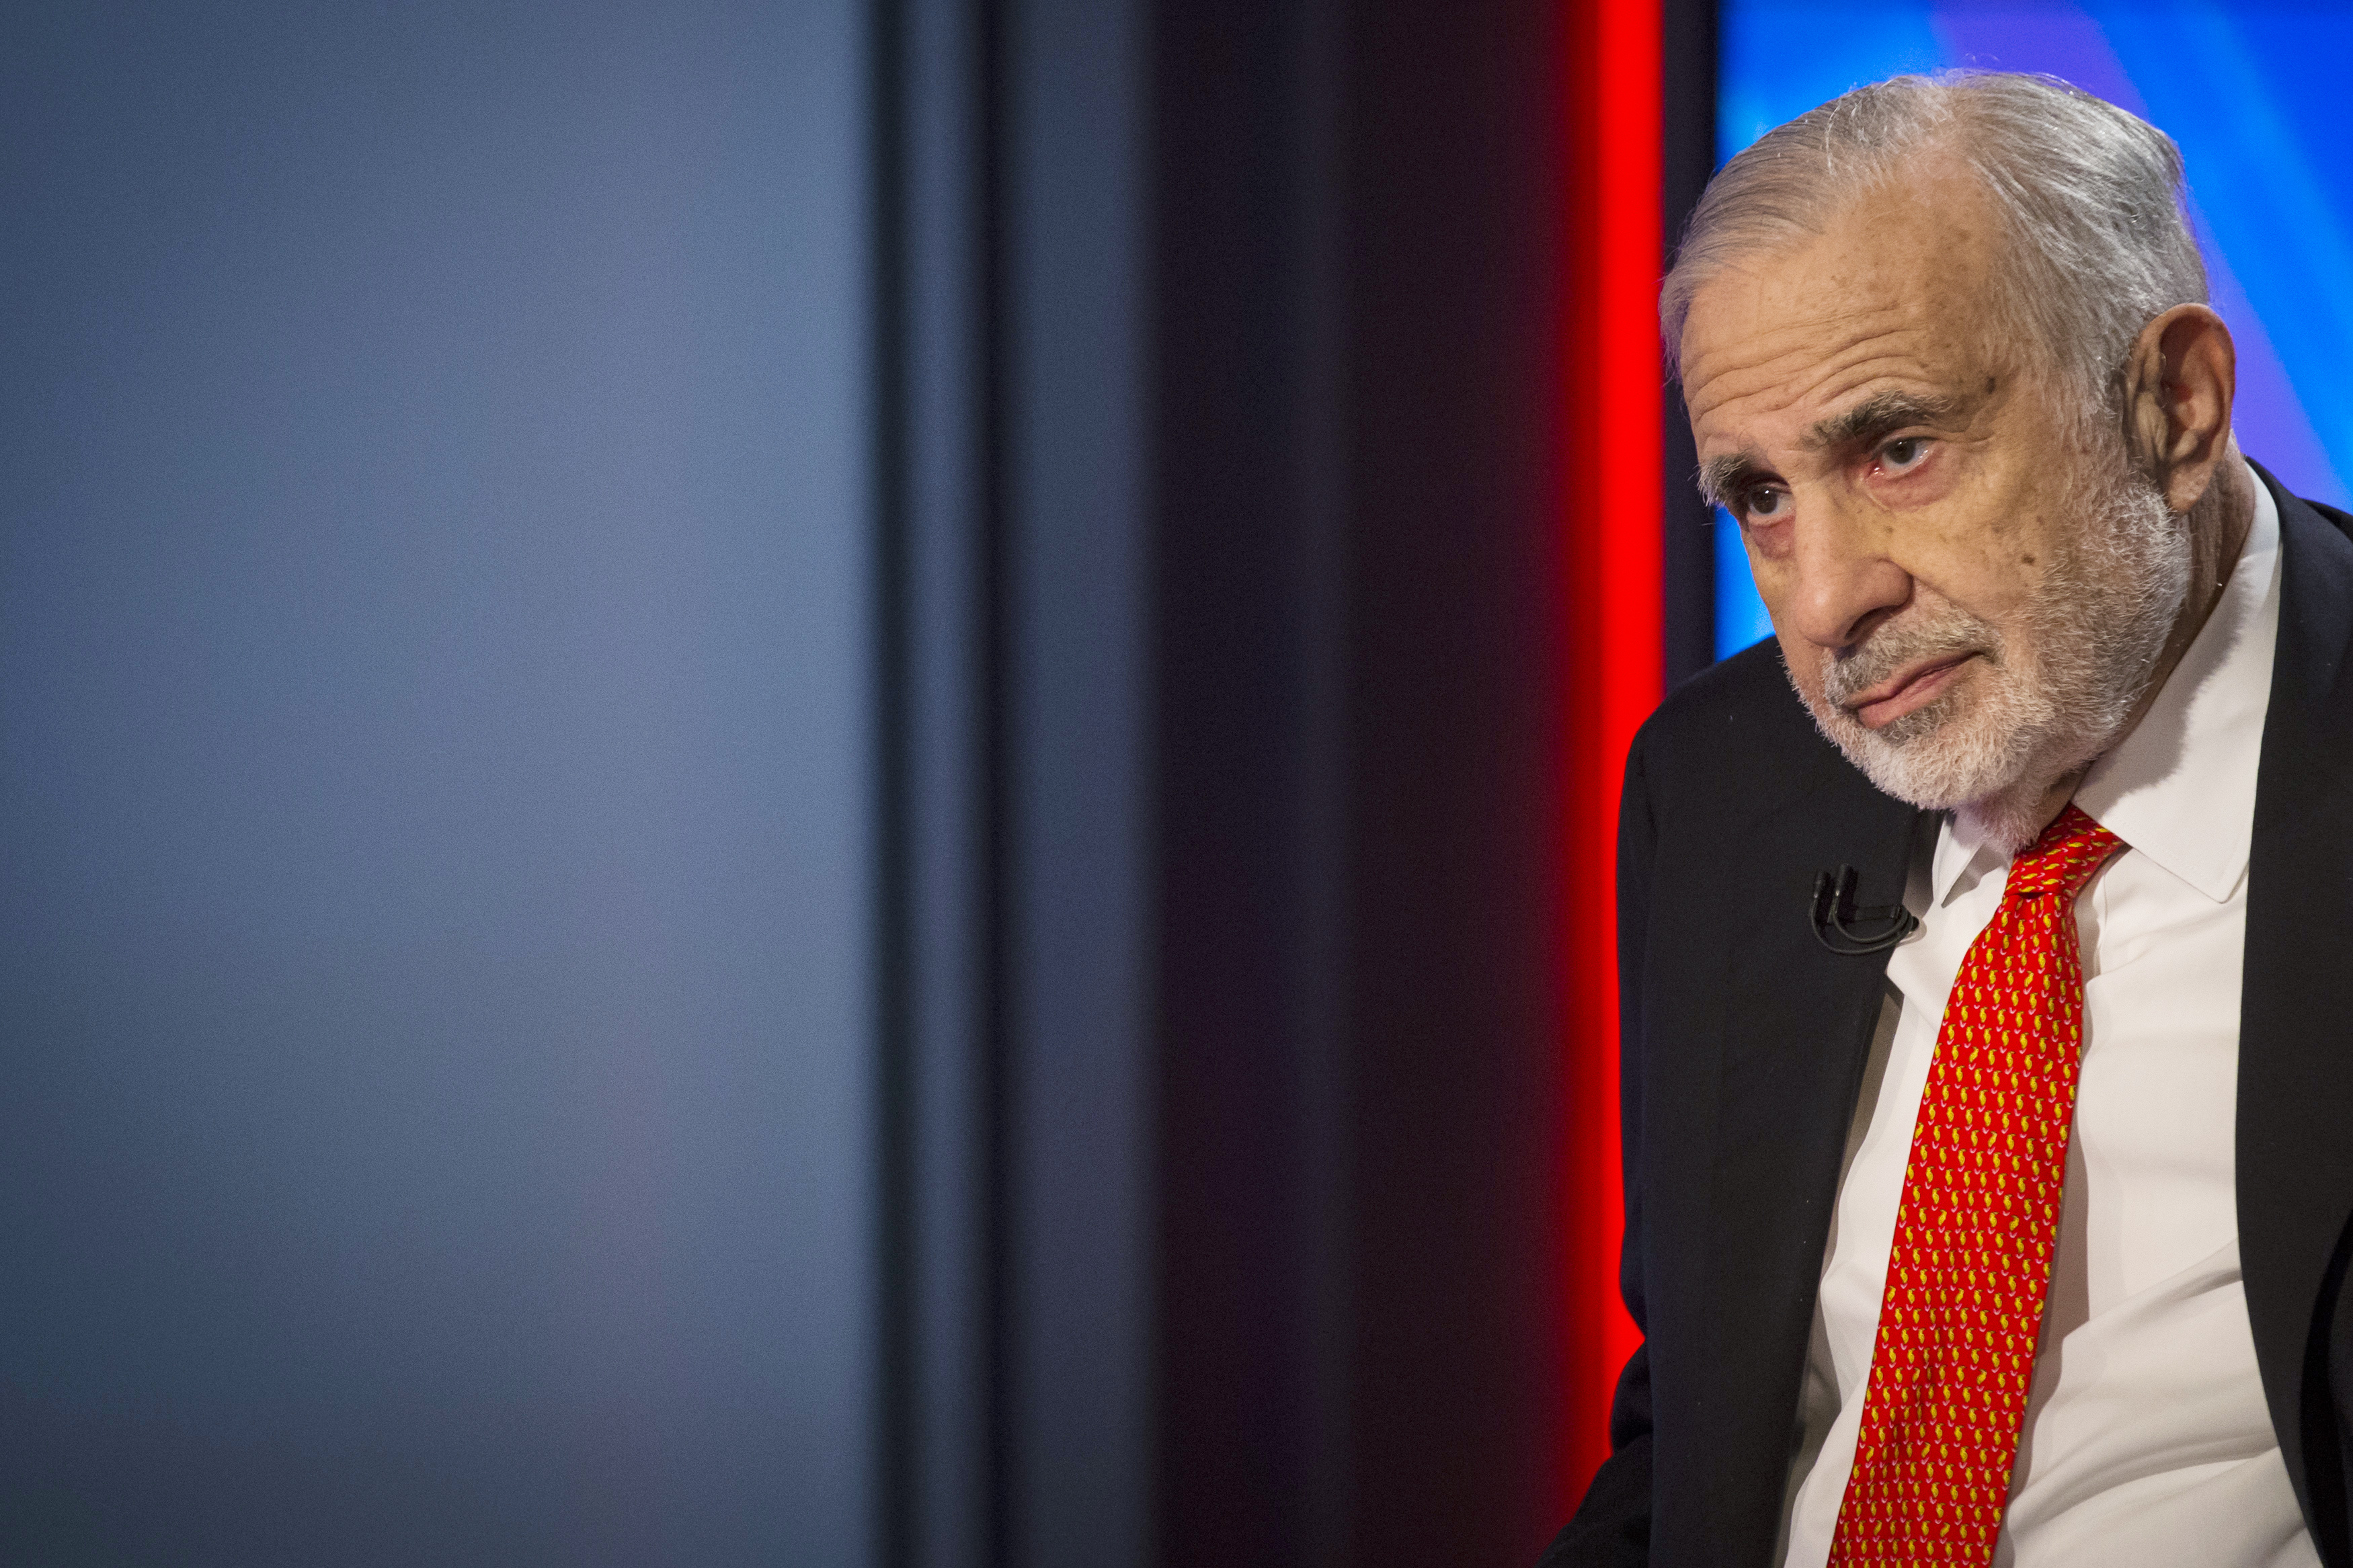 Carl Icahn gives an interview on FOX Business Network's Neil Cavuto show in New York Feb. 11, 2014.